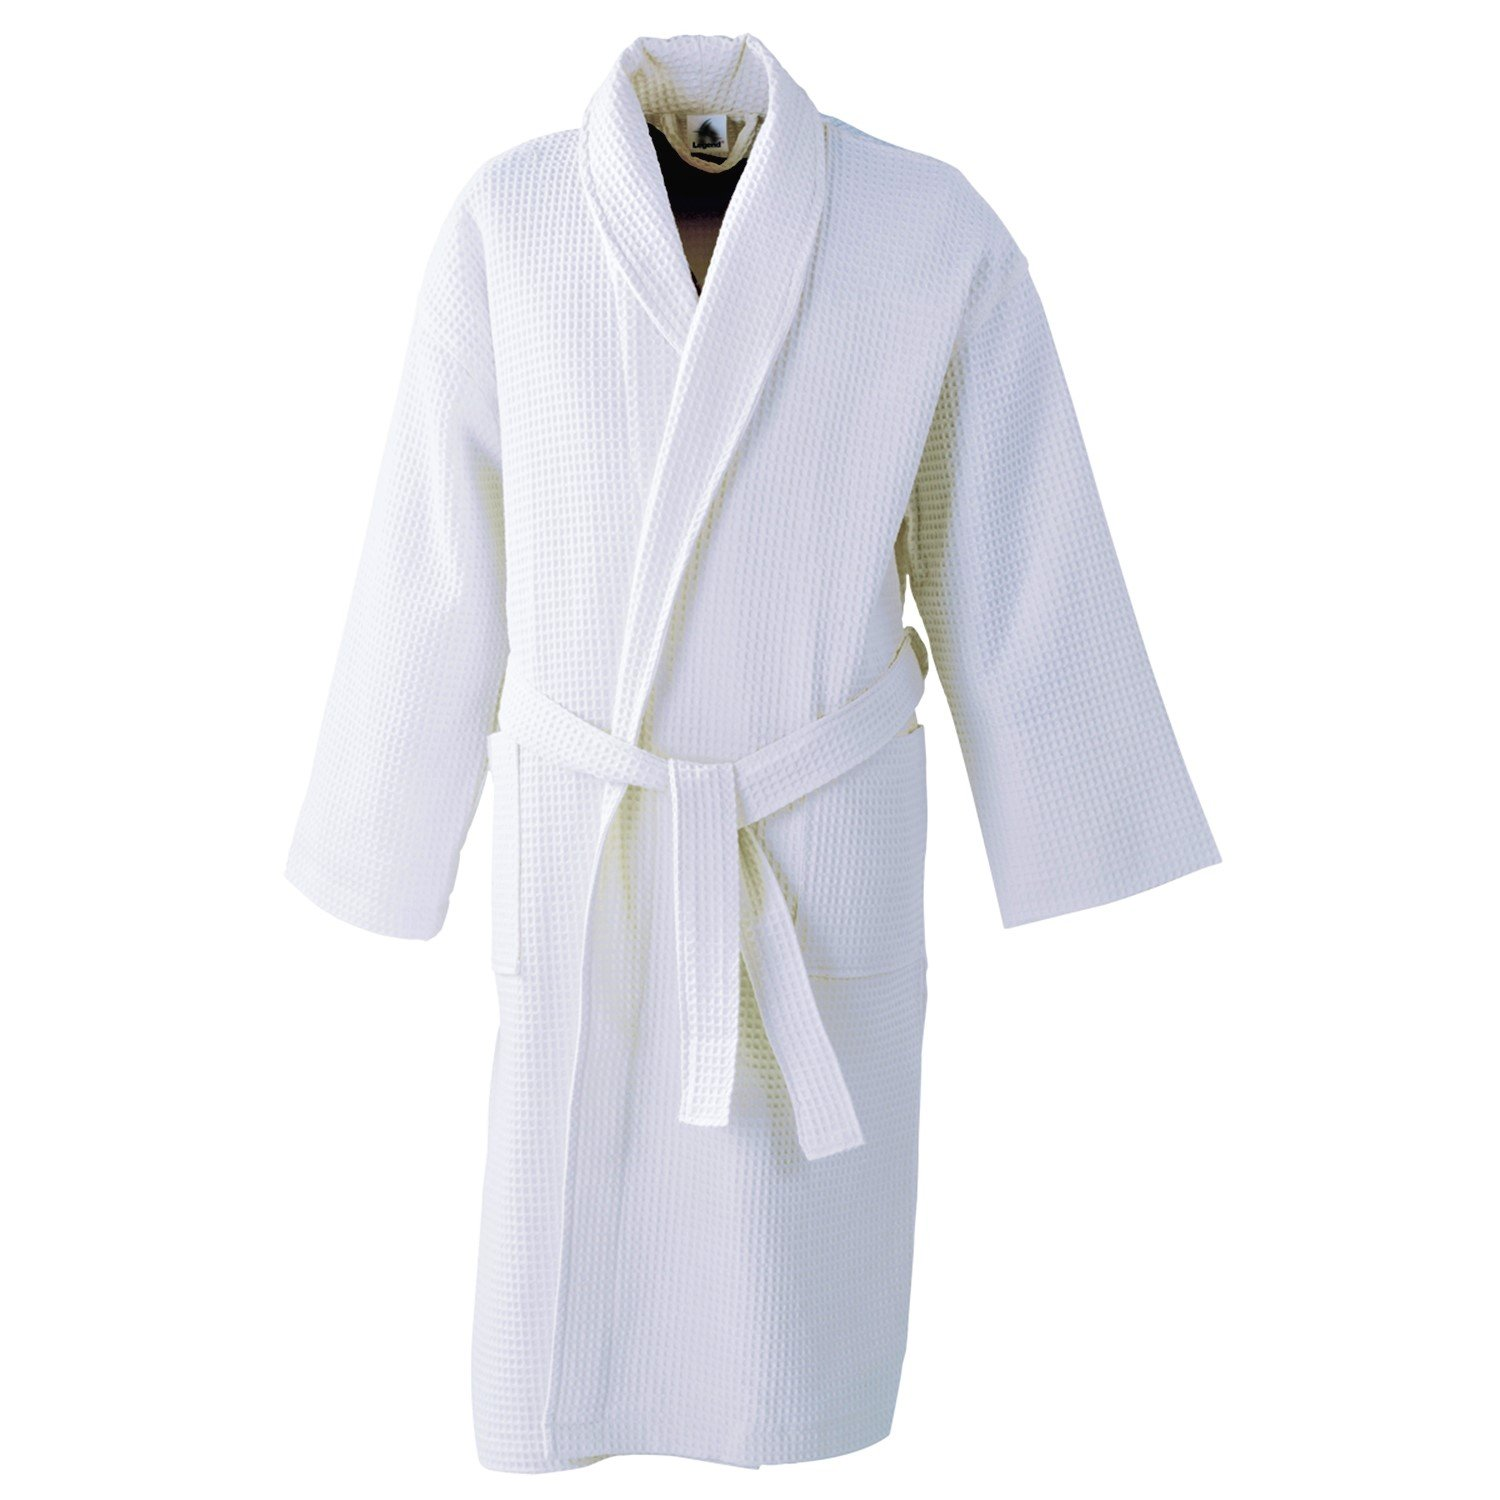 Glamptex Supreme Waffle Bath Robe Ladies Mens White Lightweight Hotel  Cotton Dressing Gown (Large 6e5c5aeea